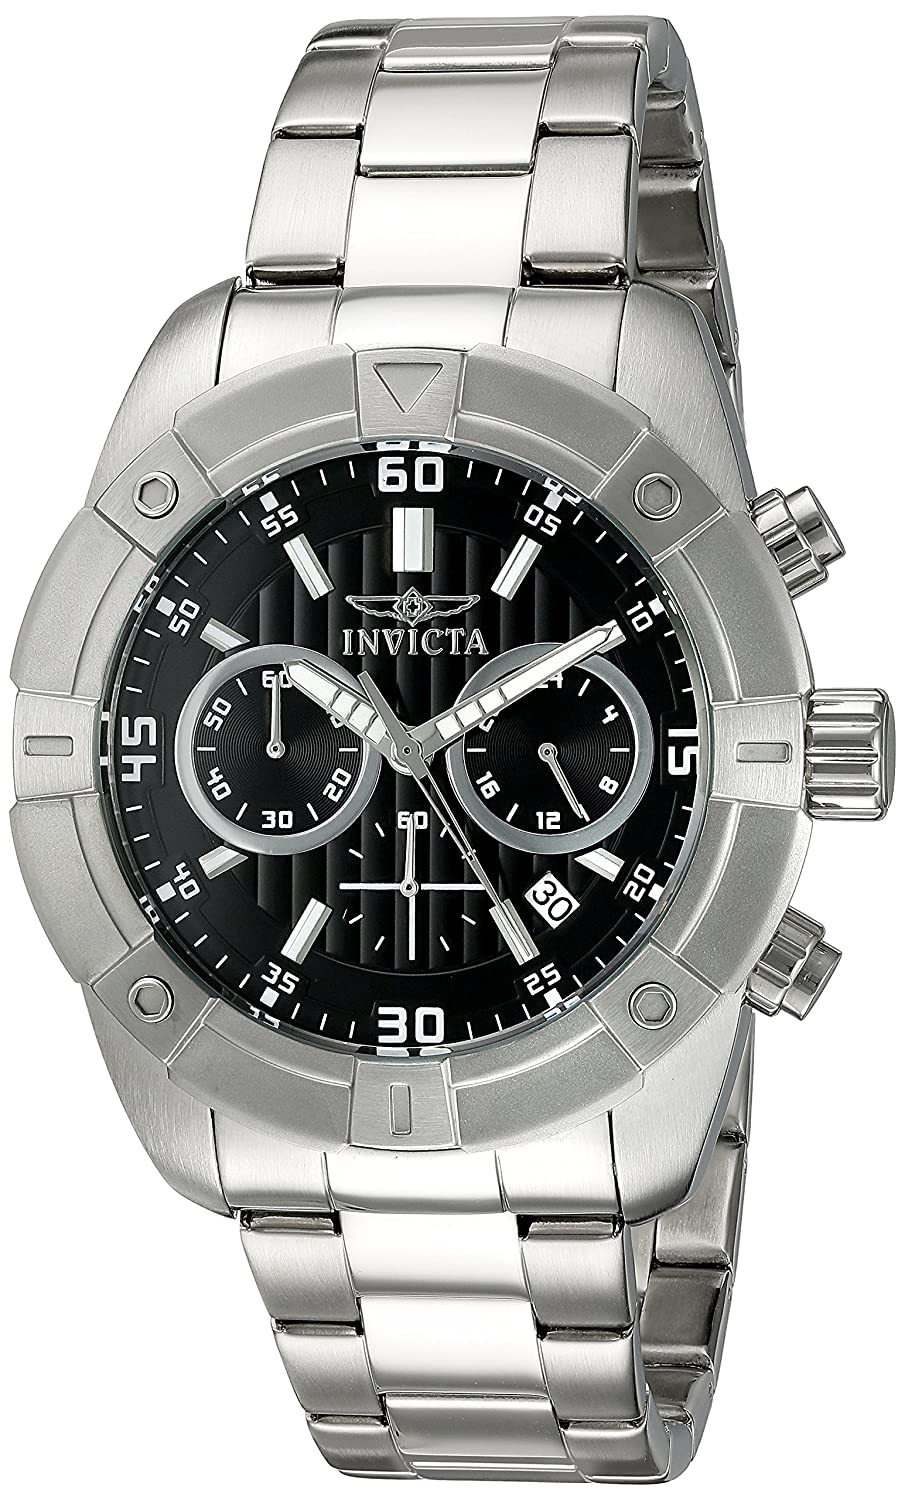 Invicta Men s 21466 Specialty Analog Display Japanese Quartz Silver-Tone Watch